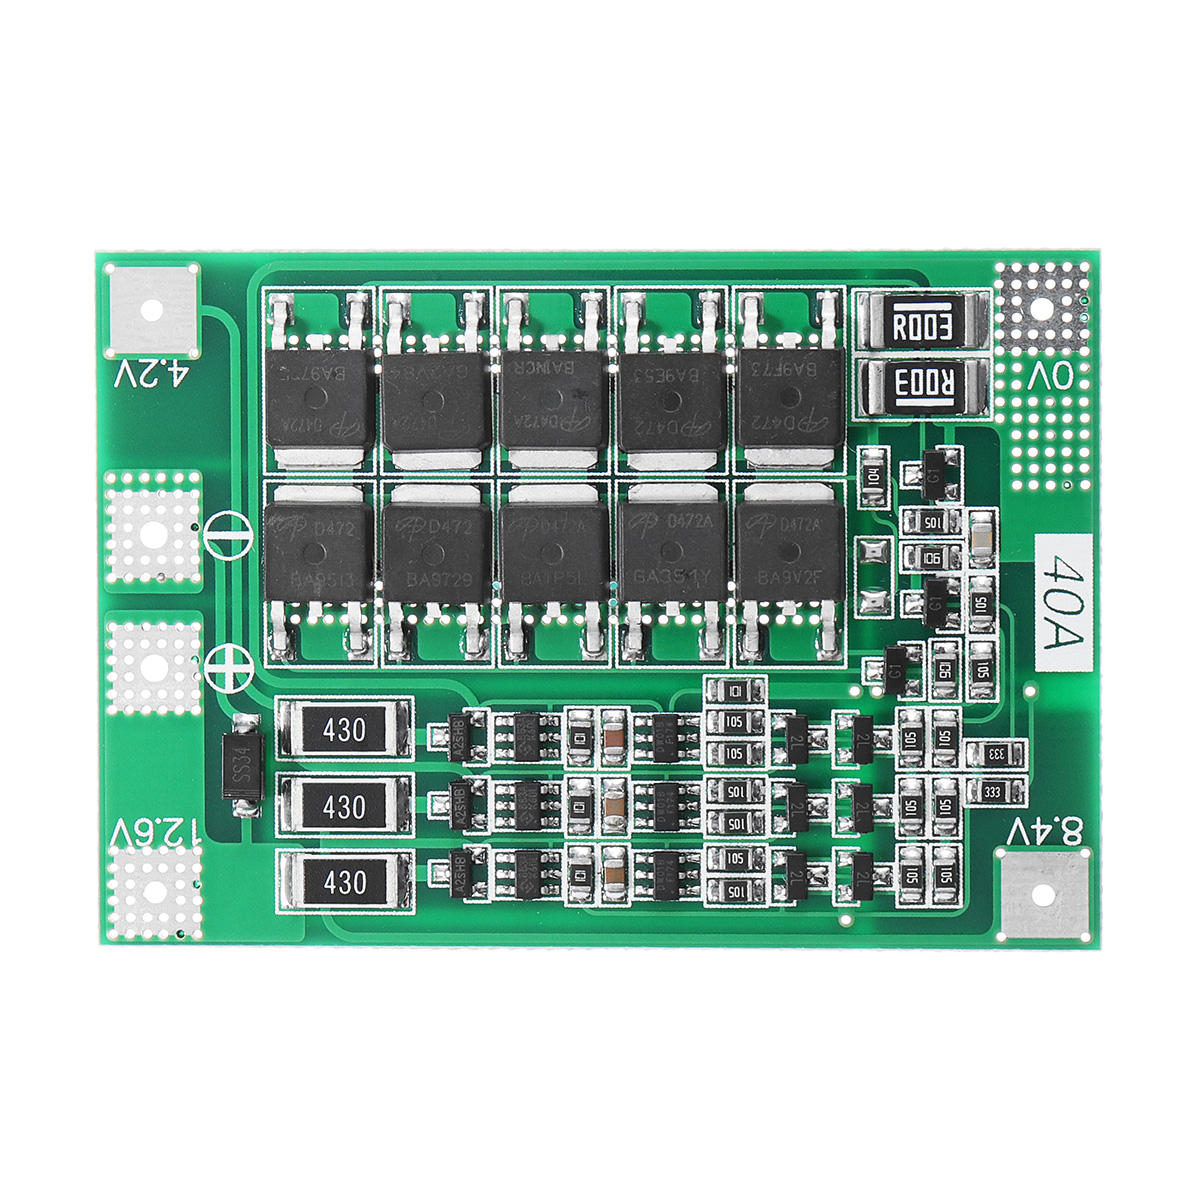 3-Series-40A-18650-Lithium-Battery-Protection-Board-111V-126V-with-Balance-for-Drill-Motor-Lipo-Cell-Module.jpg